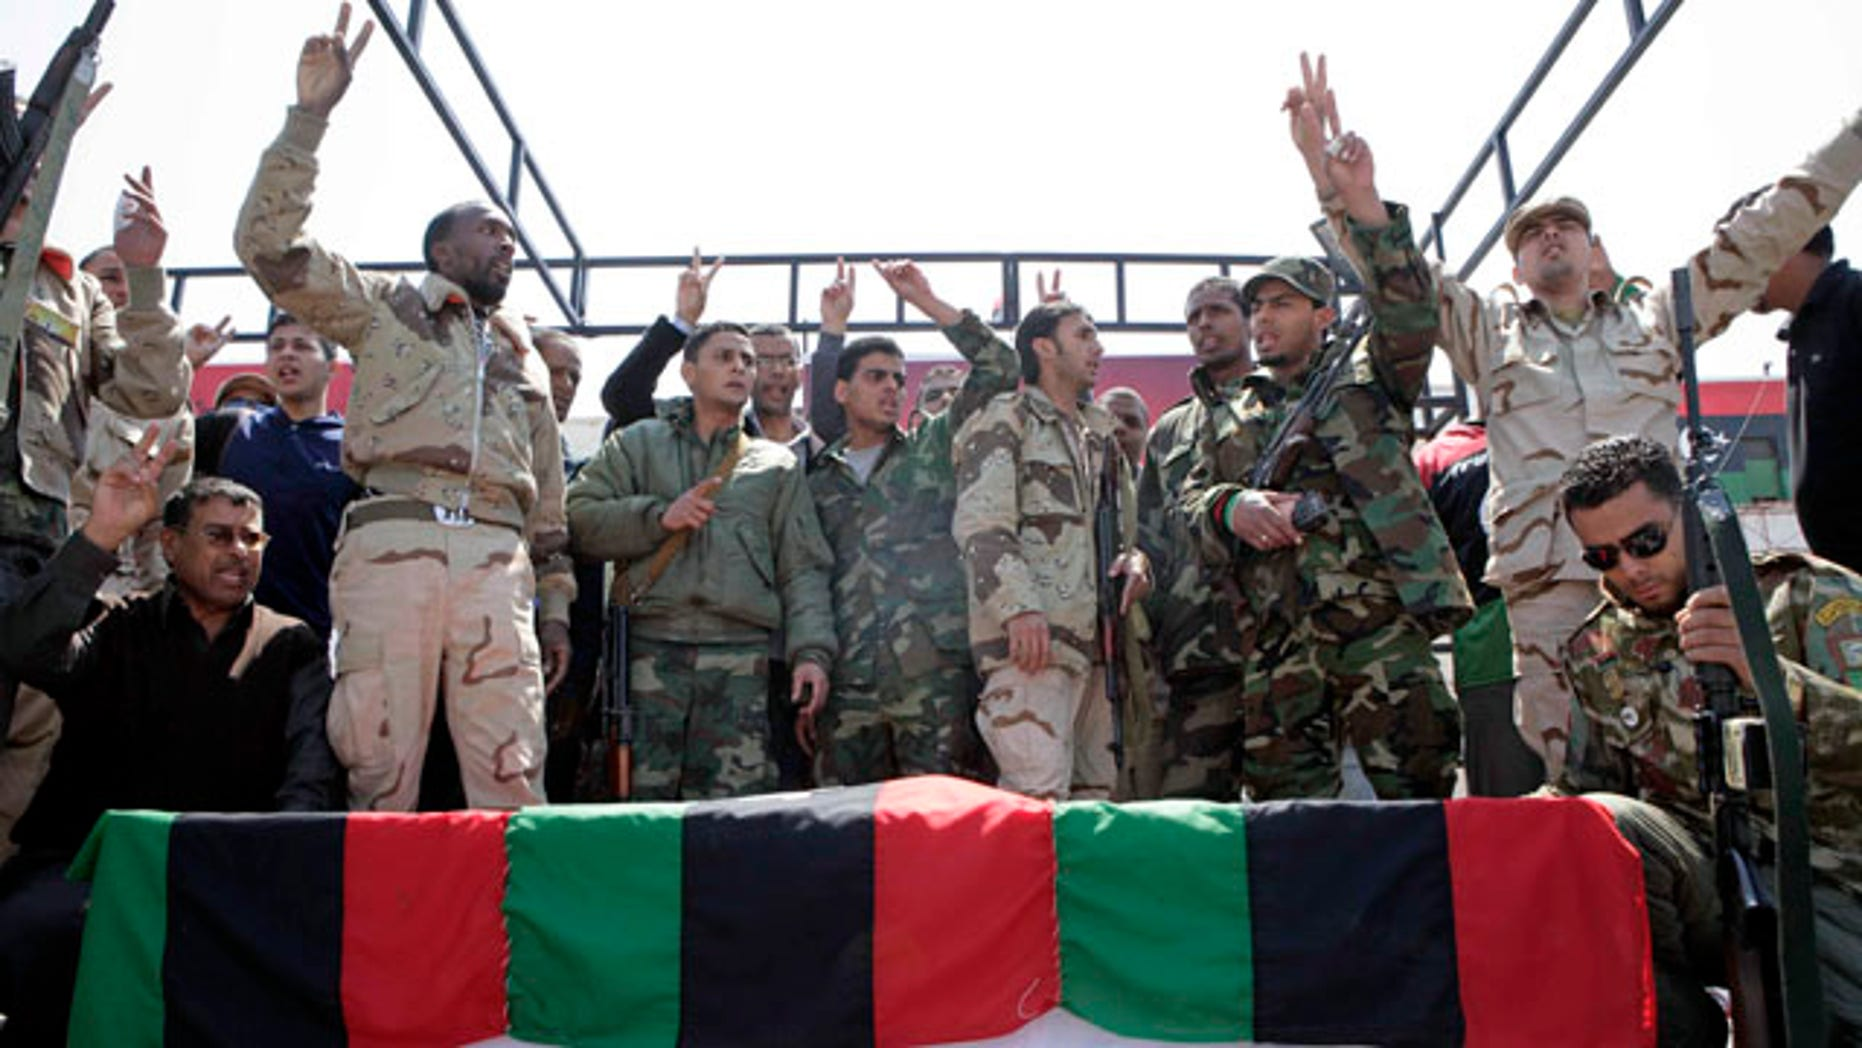 April 19: Libyan rebels surround the coffin of a comrade, whom they say was killed by forces loyal to Mouammar al-Qaddafi in Brega, during a funeral in Benghazi.